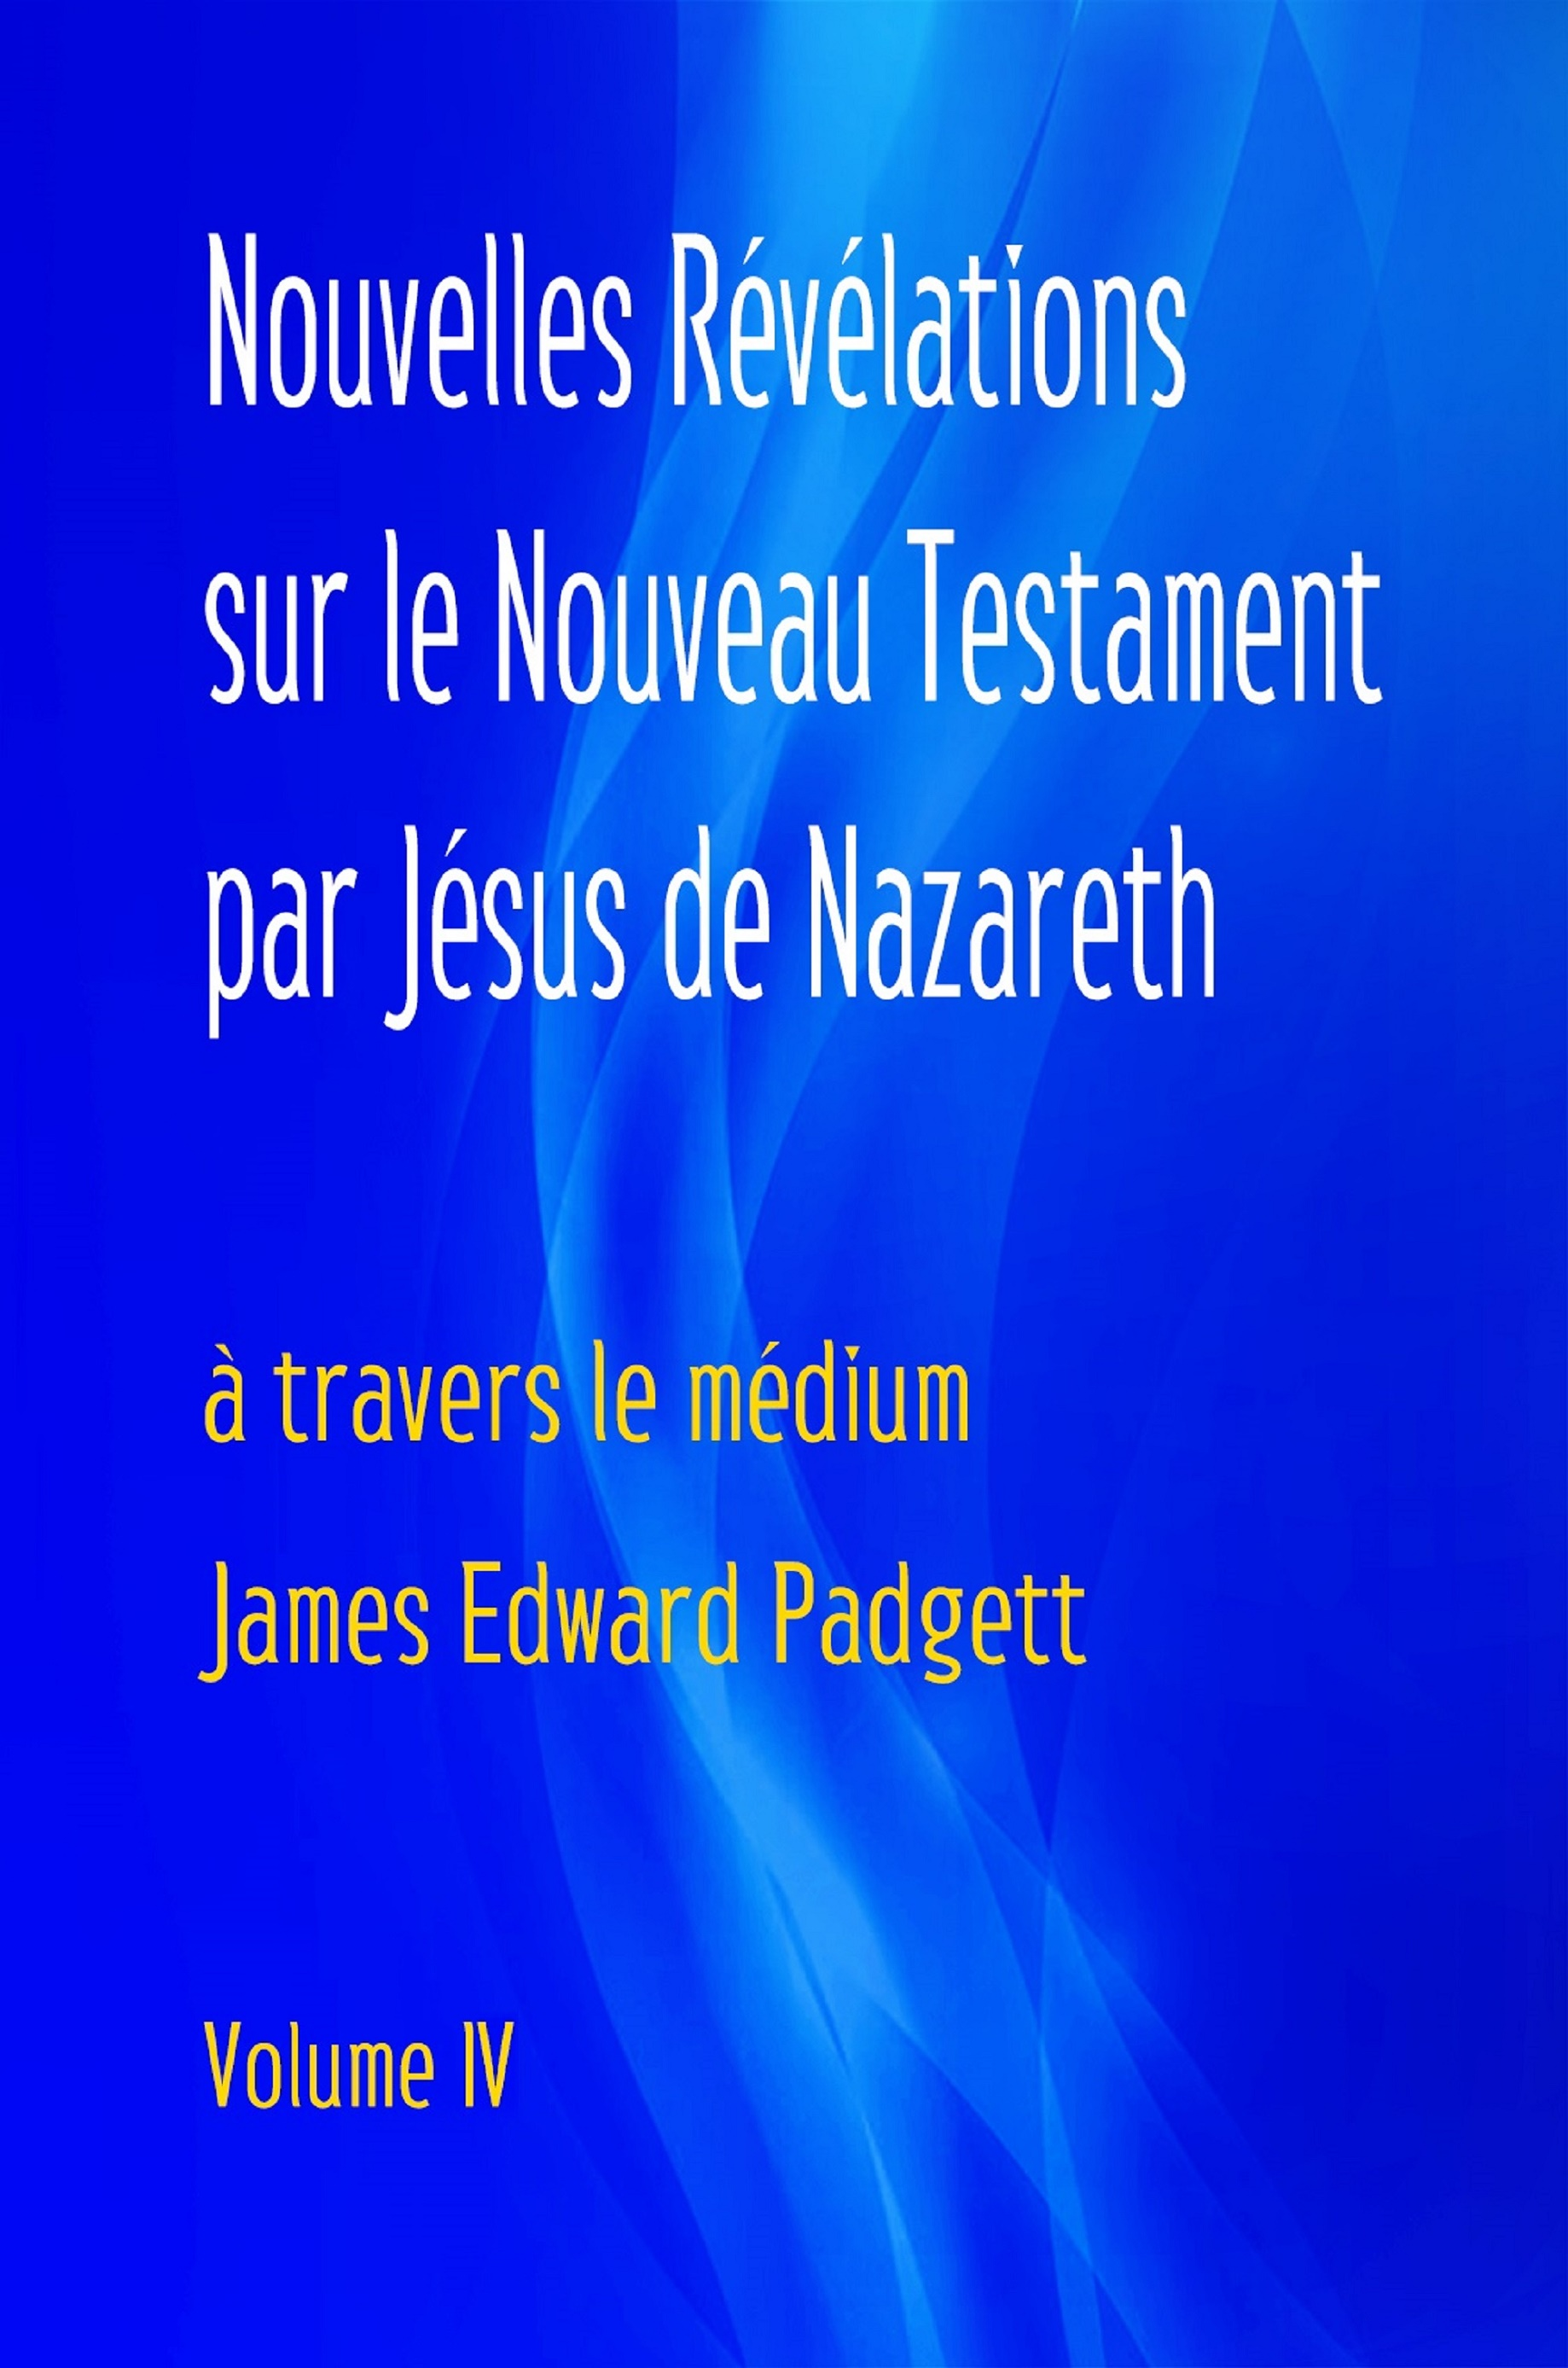 Couverture_TGRABJ_Vol4_Amazon